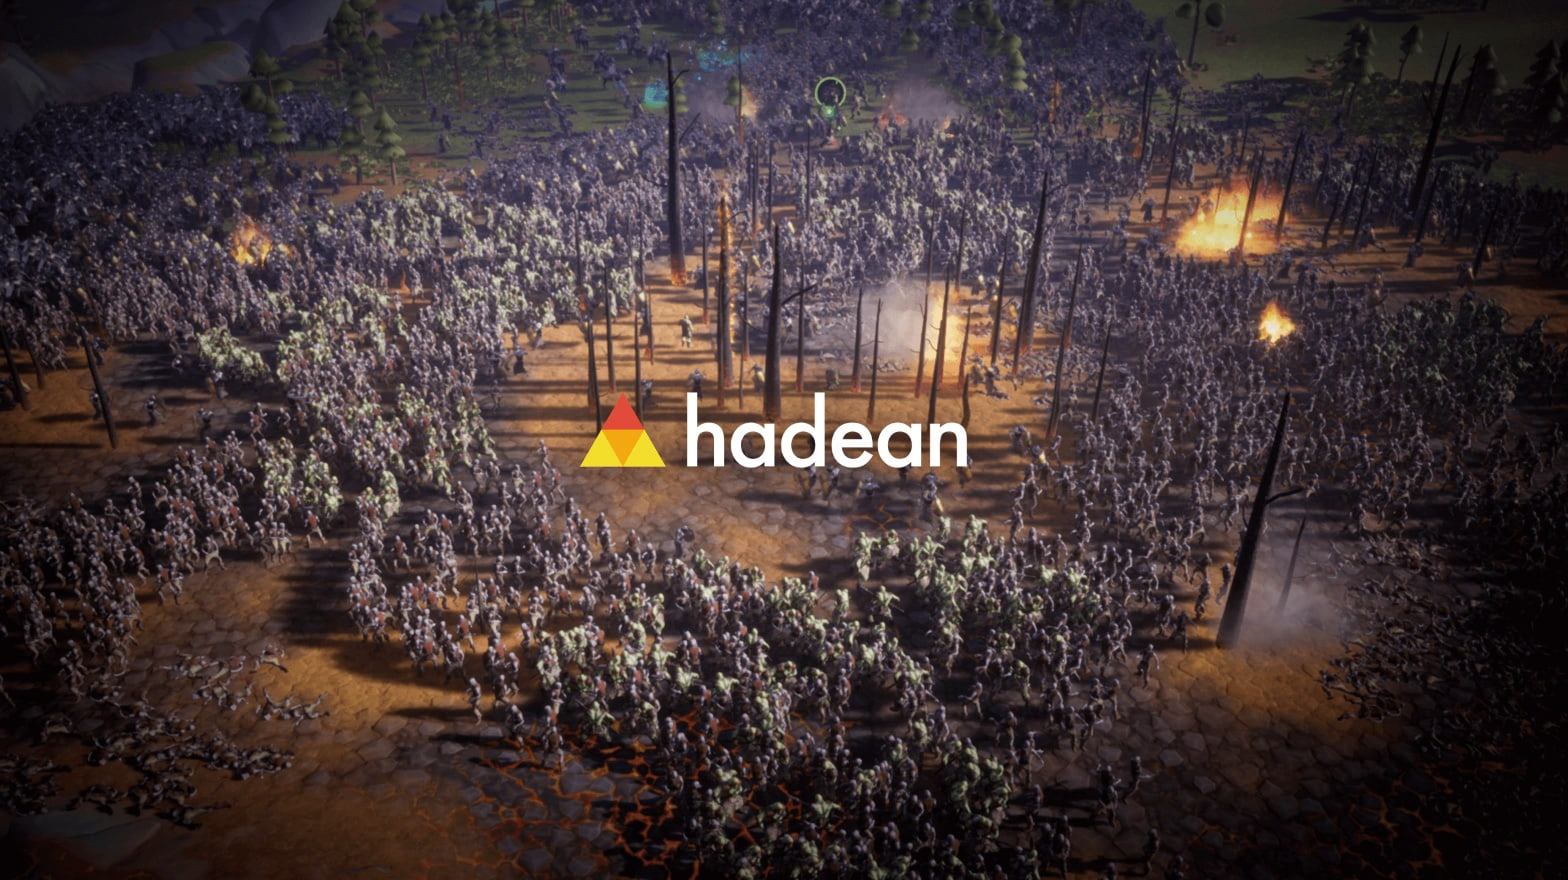 hadean logo on background with a bunch of soldiers on a barren field